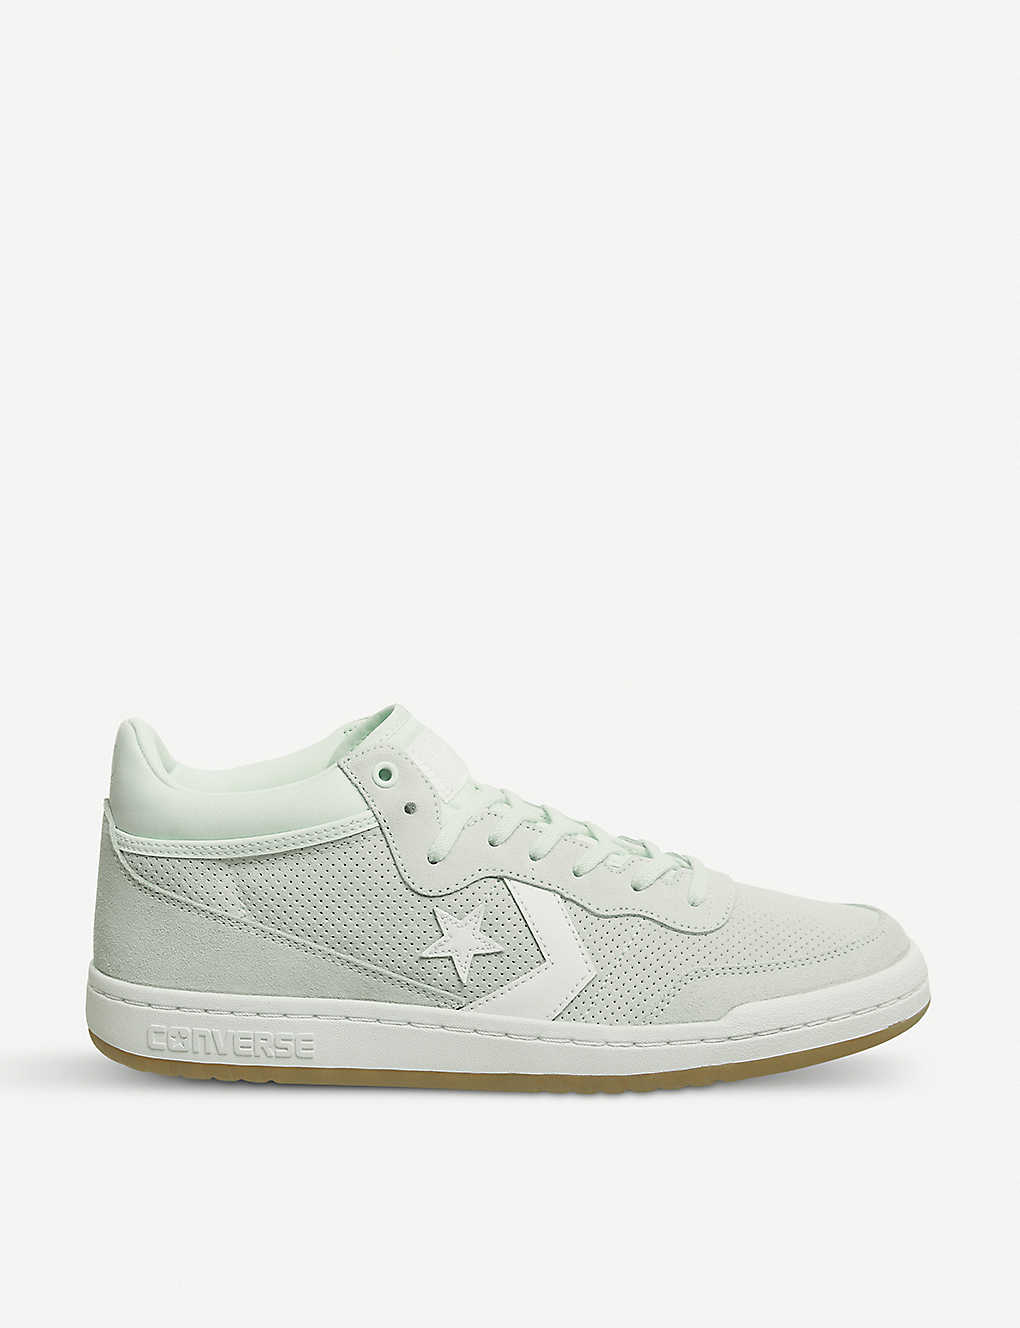 a5cfba91835ddf CONVERSE - Fastbreak Mid suede and mesh trainers